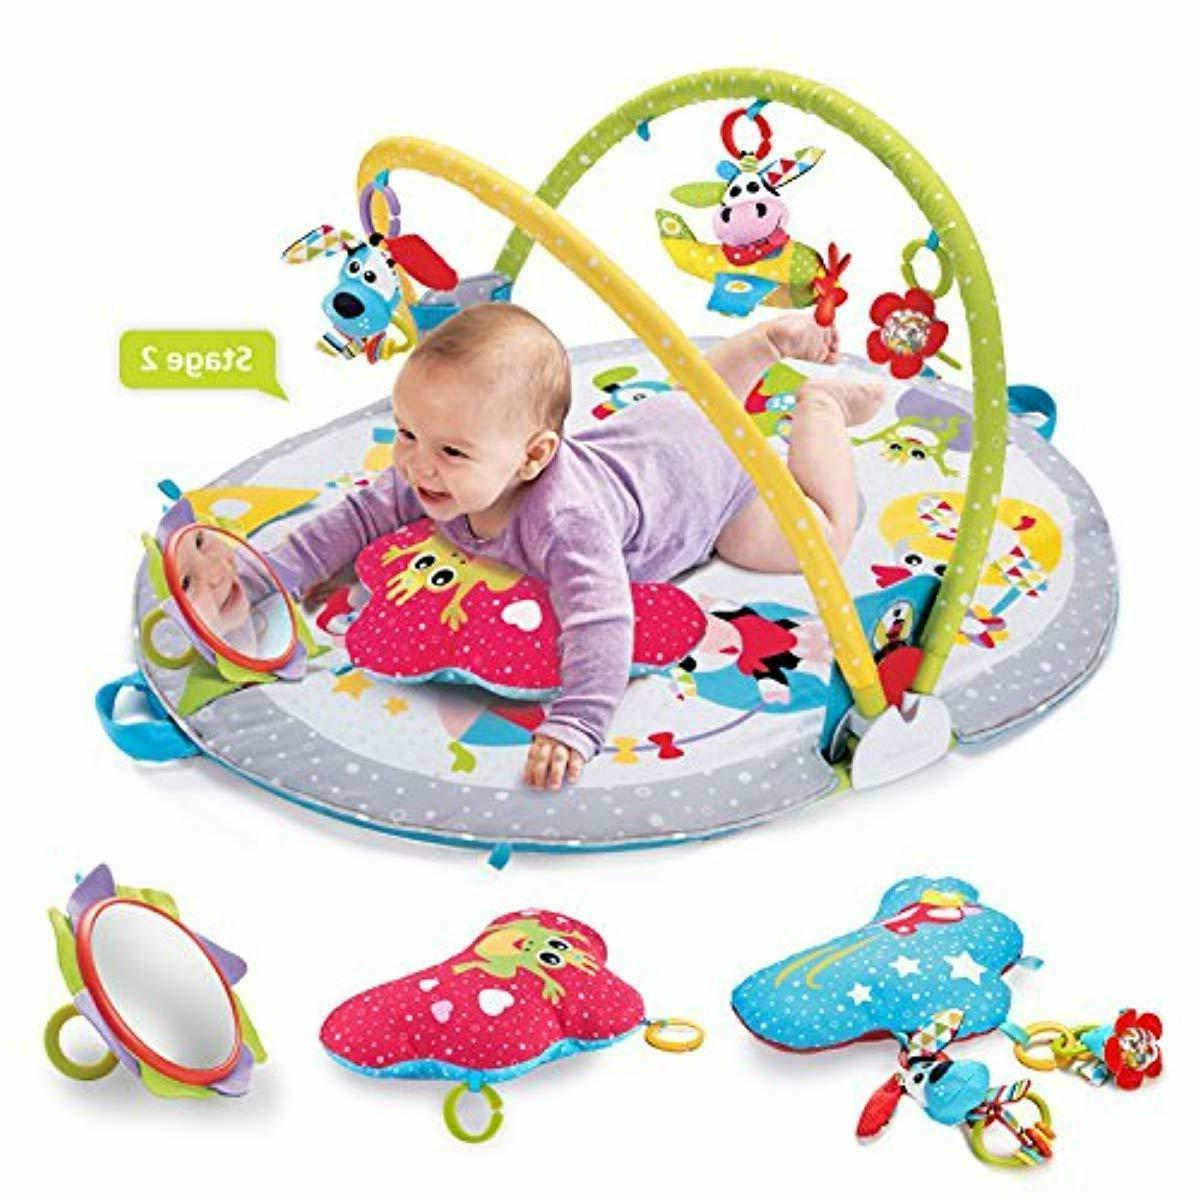 Baby Lay Up Infant Activity Newborns Month